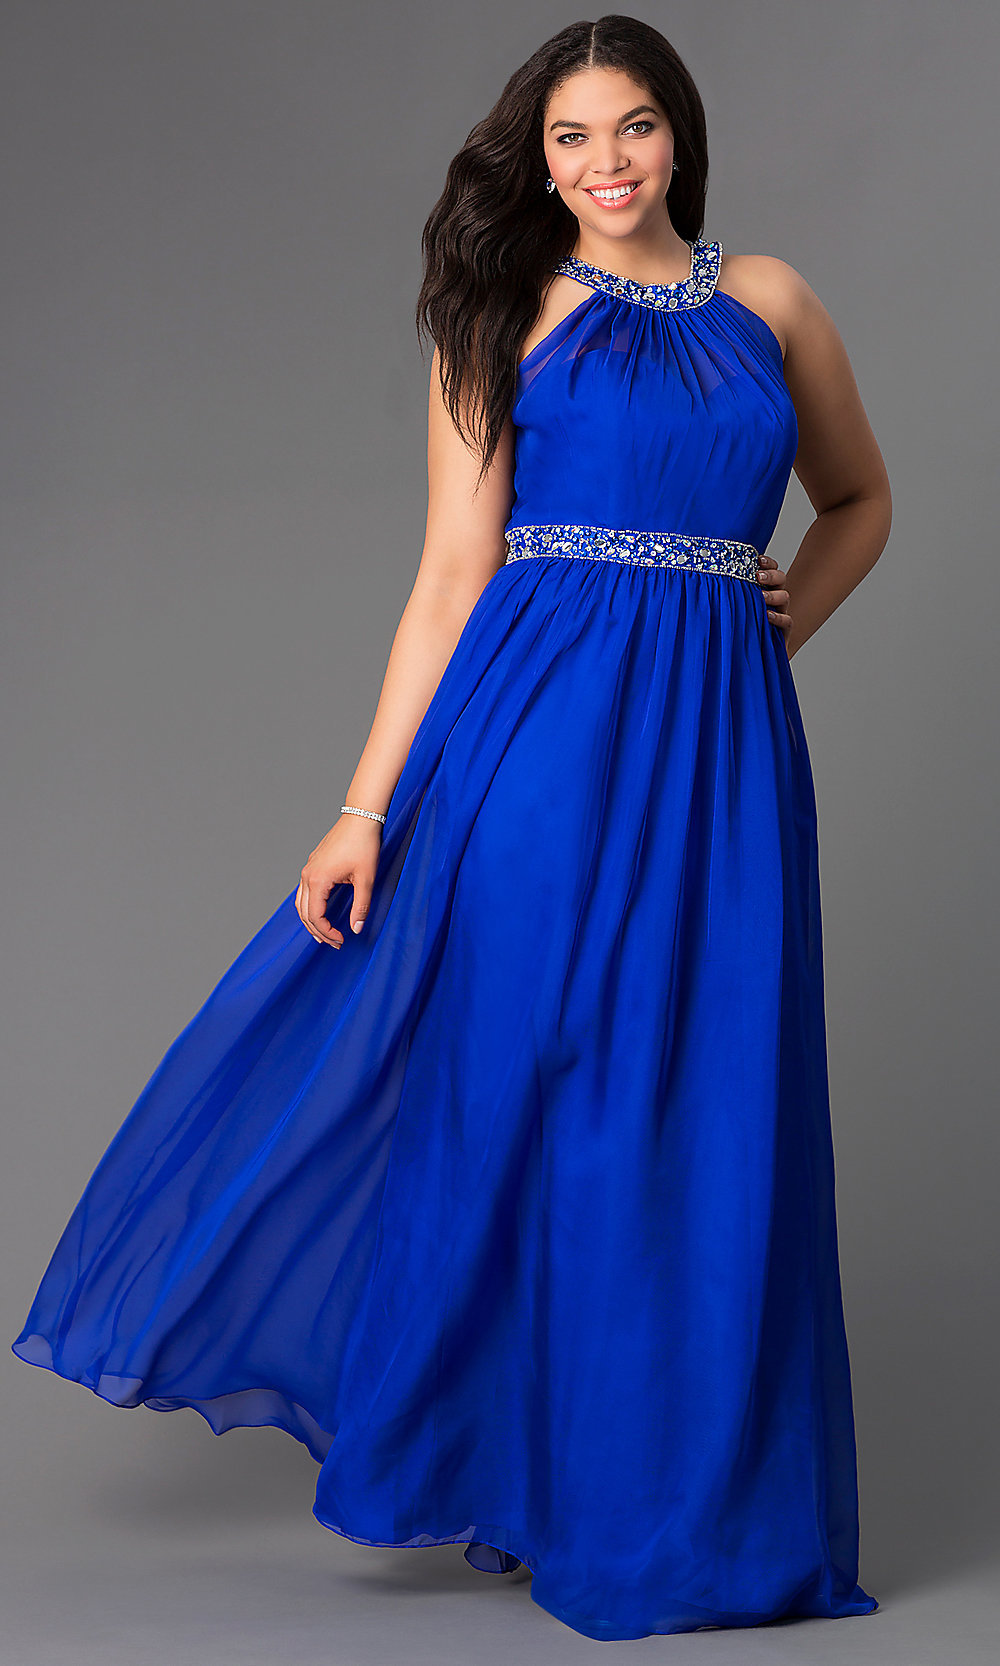 Plus Size Royal Blue Bridesmaid Dresses Uk - Junoir Bridesmaid Dresses